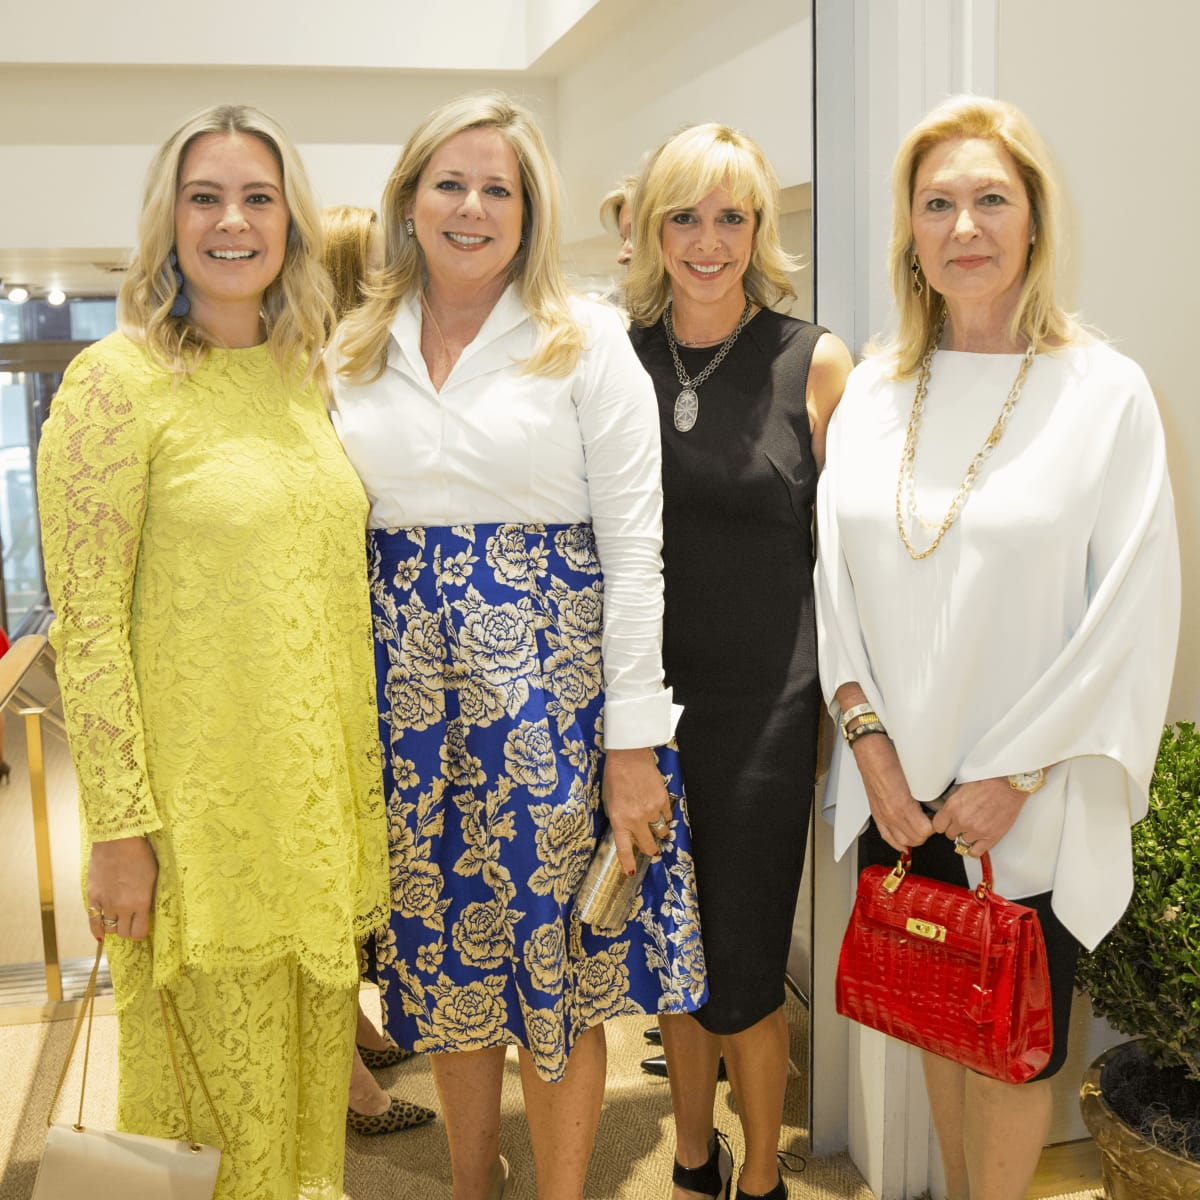 Jacquelin Taylor, Kristi Hoyl, Cindy Stager, Peggy Sewell